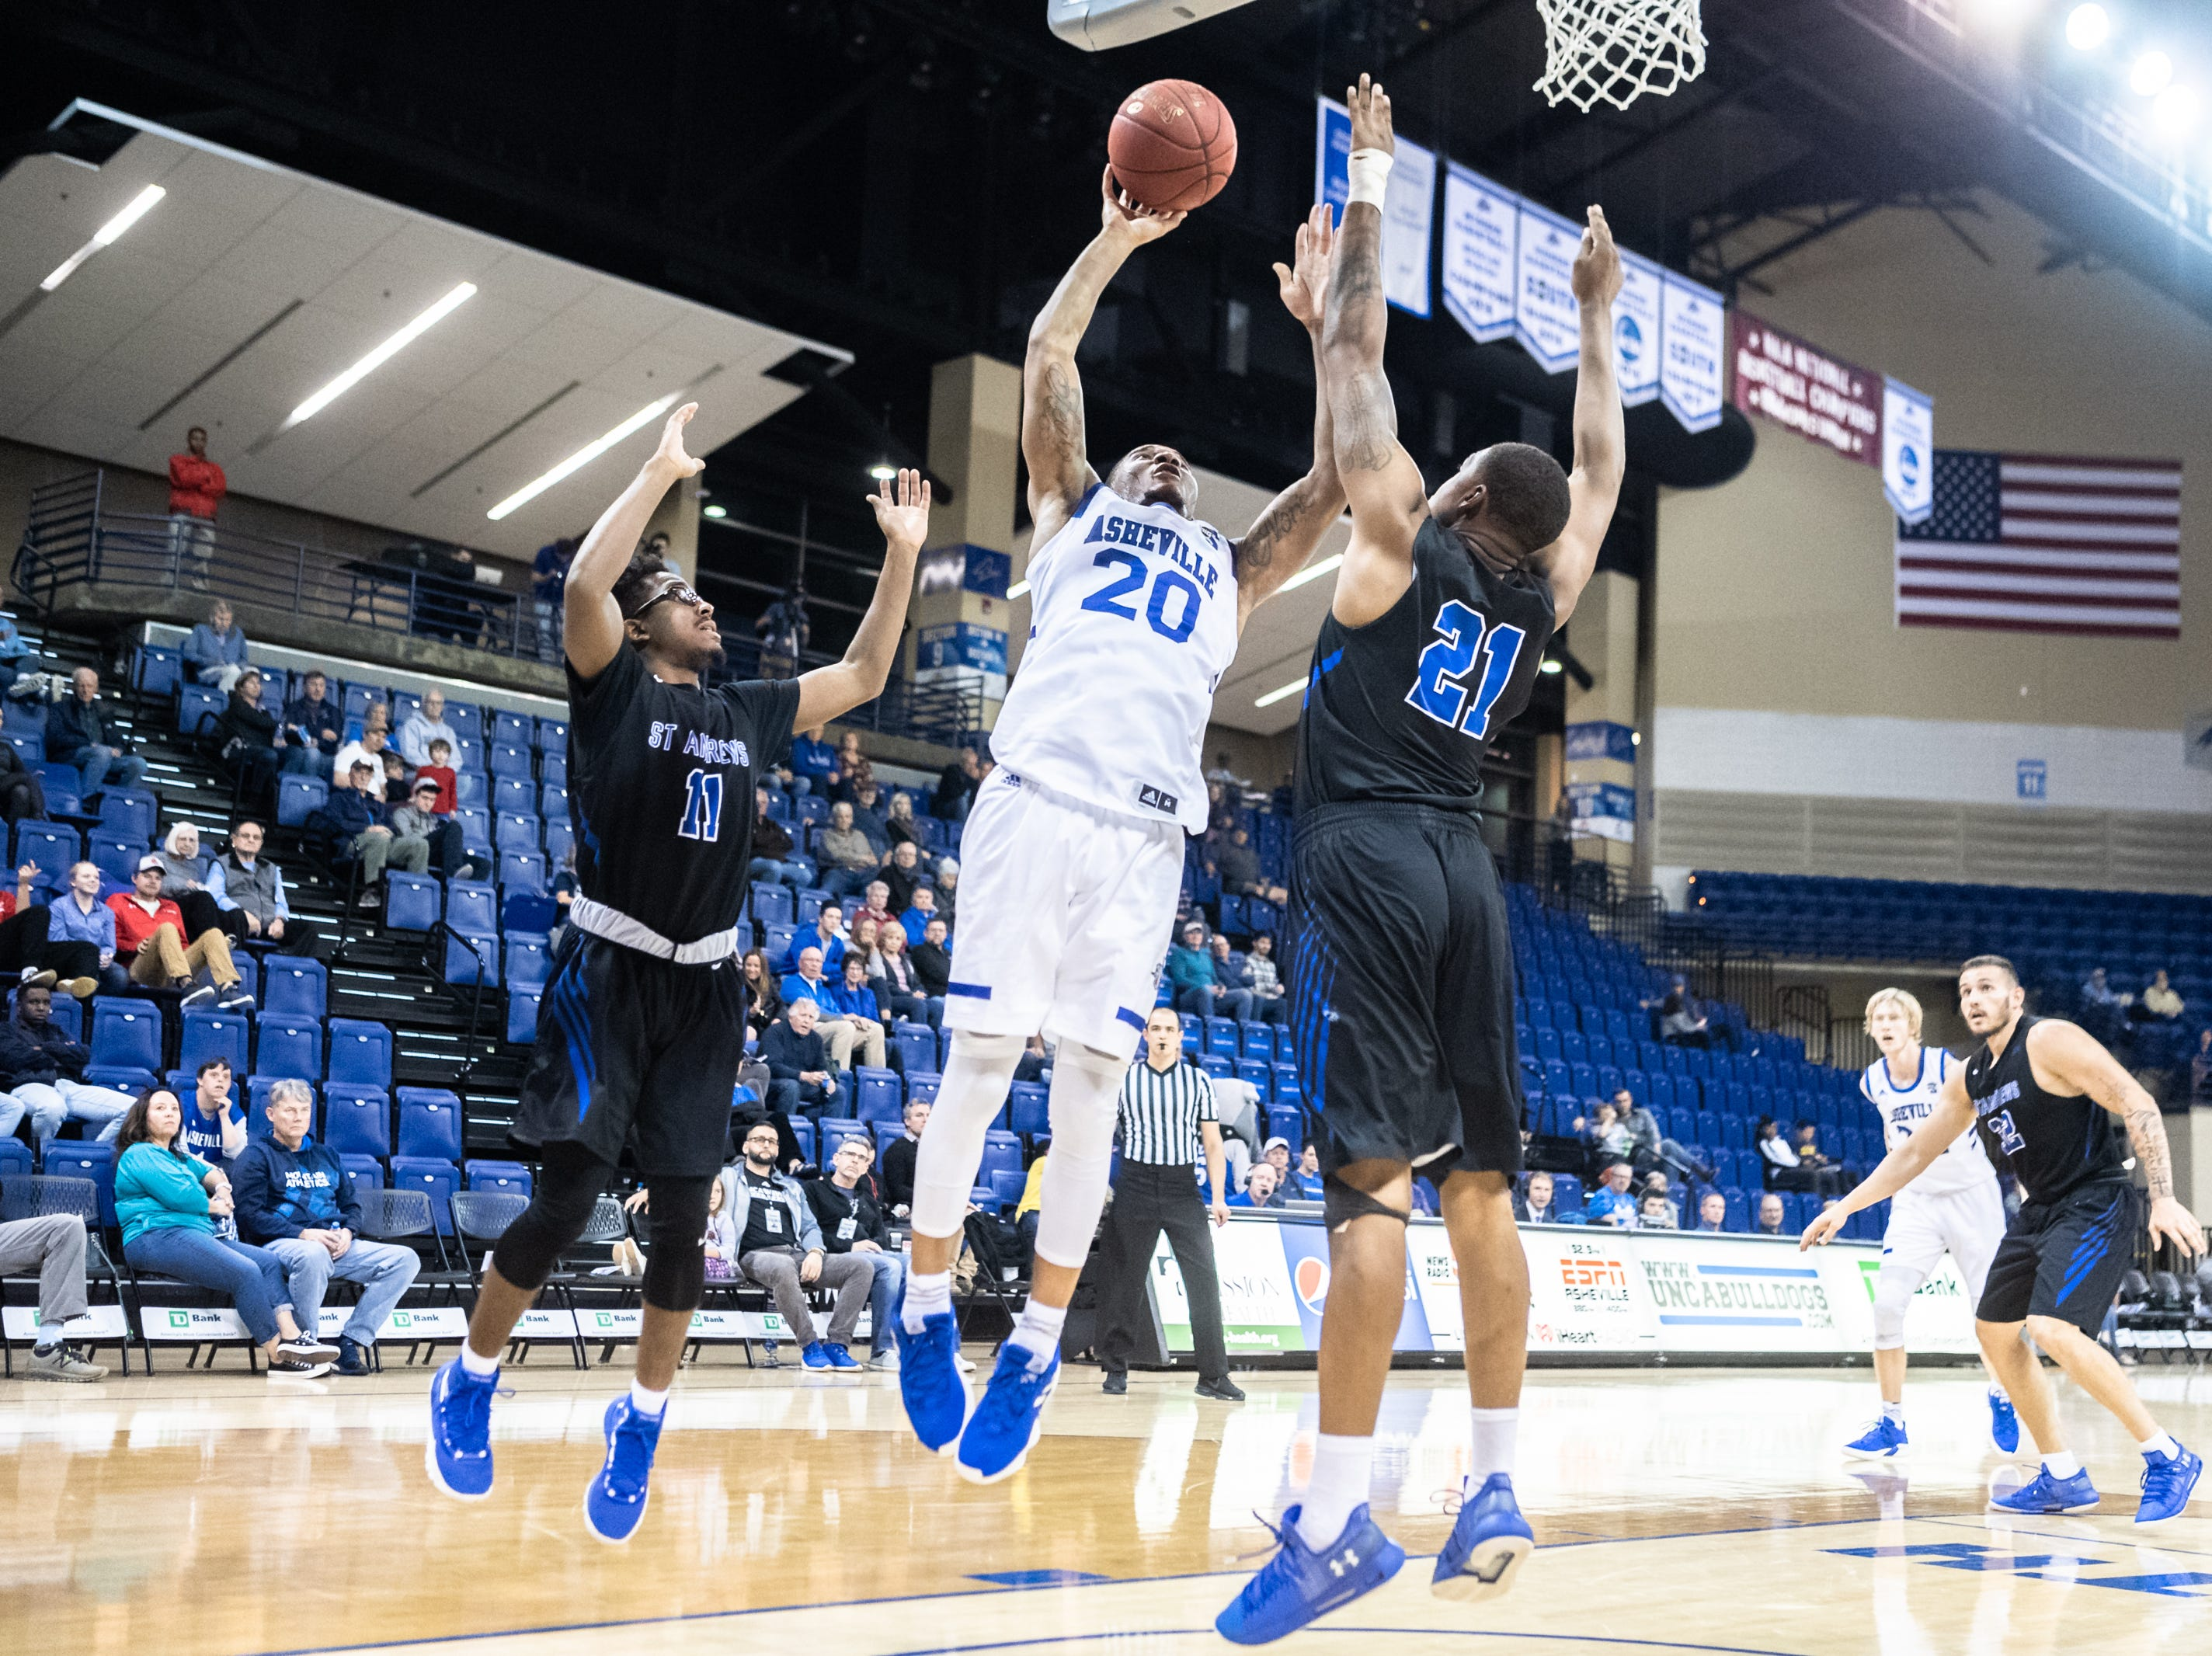 The UNC Asheville men's basketball team hosted St. Andrews for their season opener, defeating them 87-47, Nov. 8, 2018.